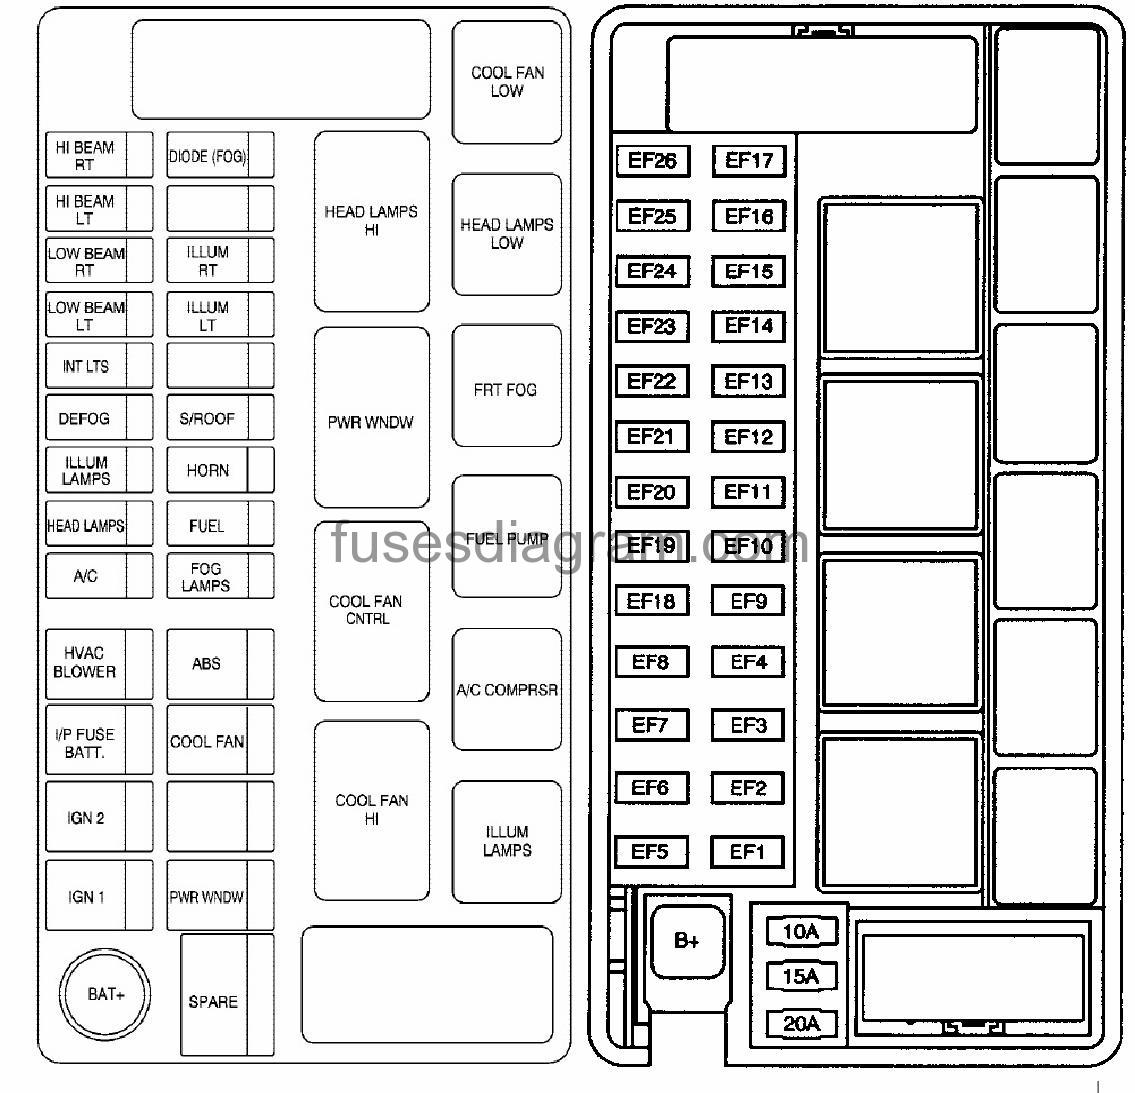 chevrolet aveo fuse box diagram detailed schematics diagram chevy manual transmission wire diagram 2006 chevy aveo fuse box diagram great design of wiring diagram \\u2022 2010 mustang fuse box diagram chevrolet aveo fuse box diagram